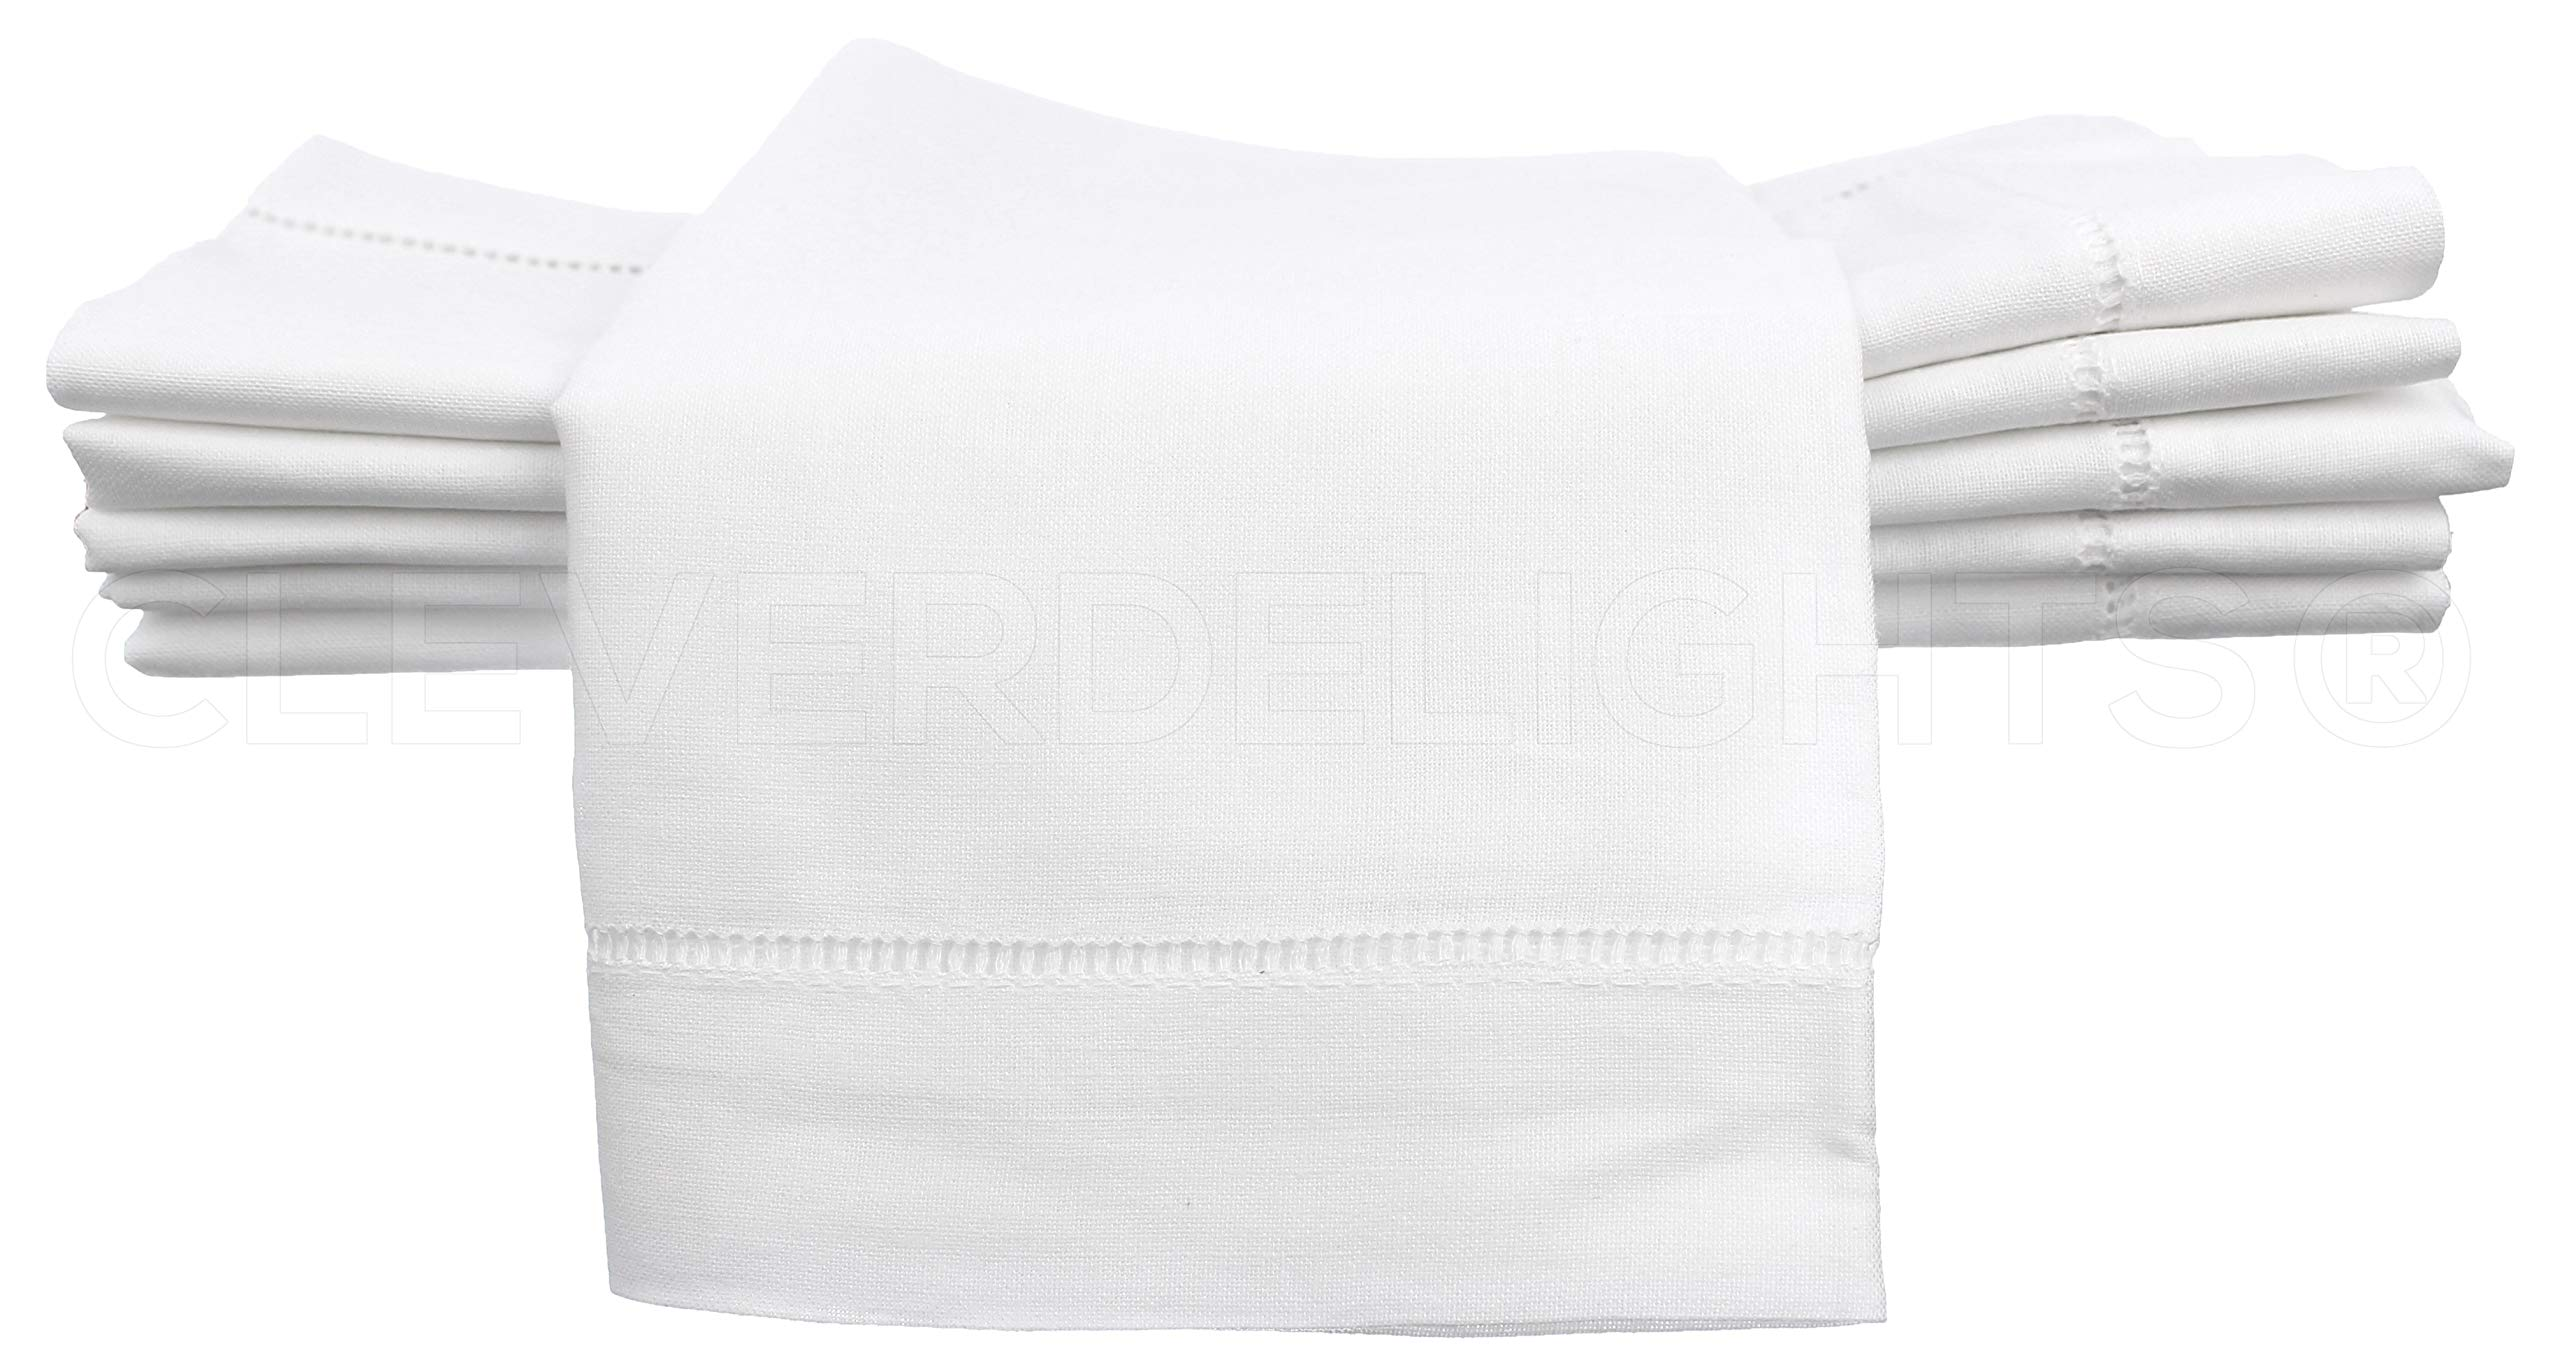 CleverDelights 12 White Hemstitch Dinner Napkins - 20'' - 55/45 Linen Cotton Blend - 20'' x 20'' Ladder Hemstitch Cloth Dinner Napkins by CleverDelights